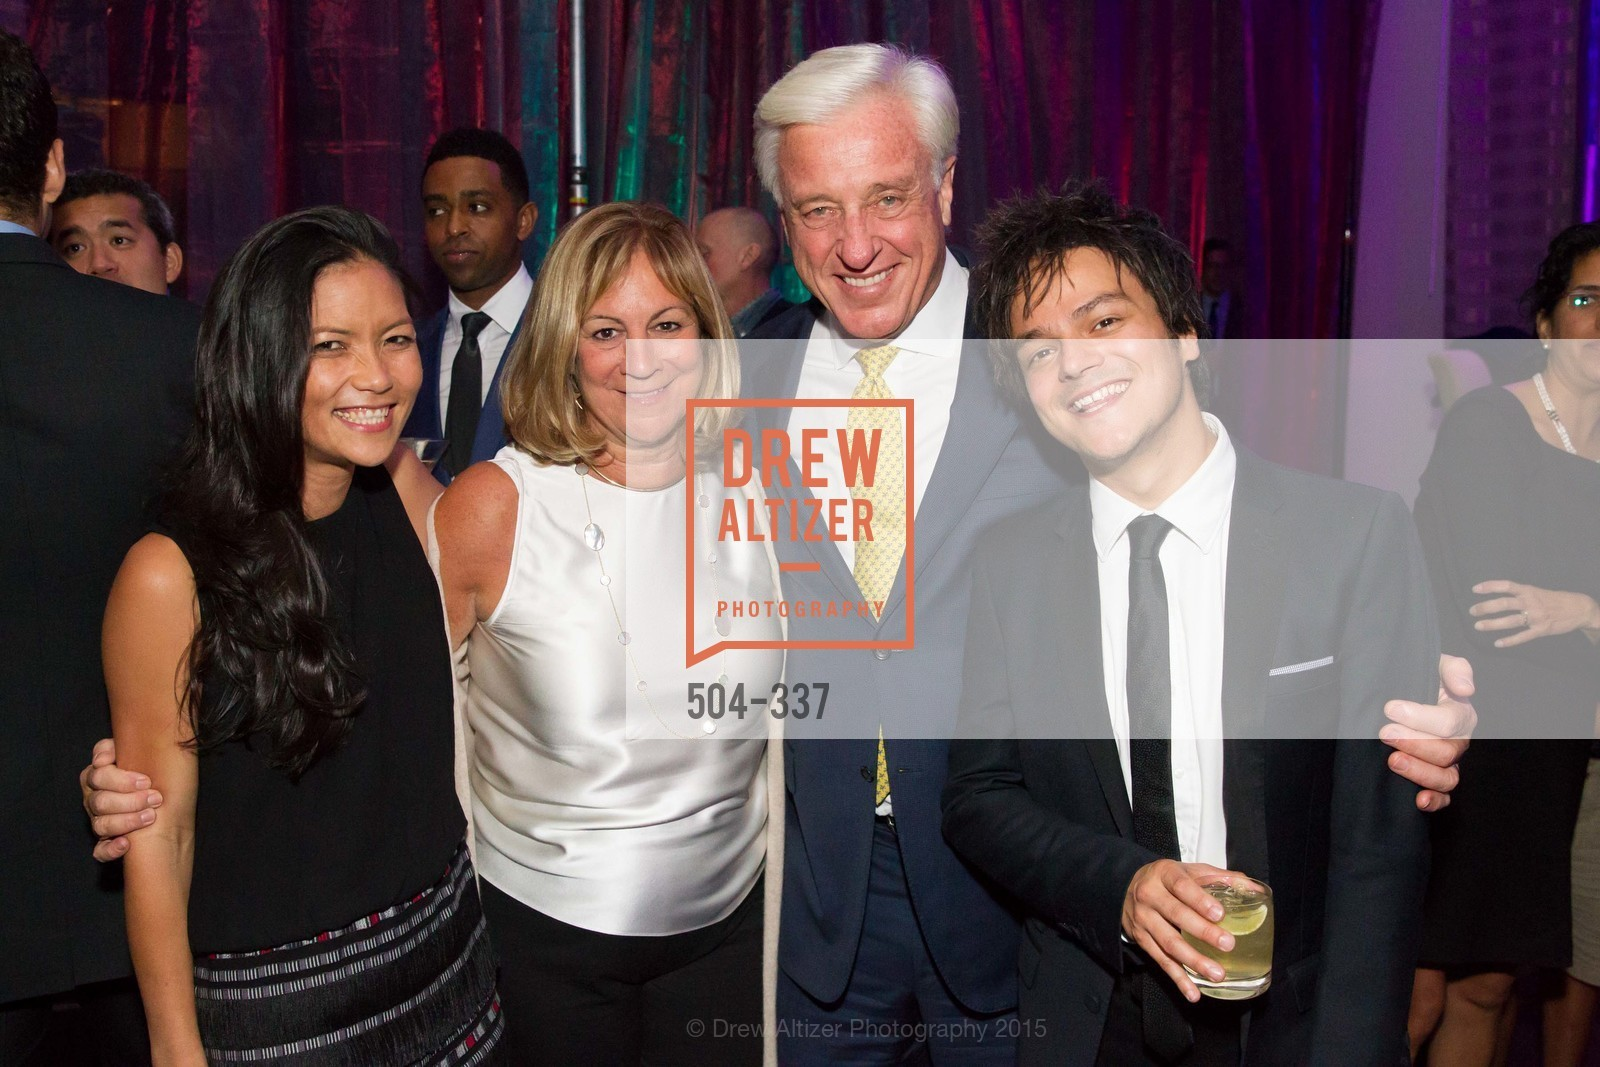 Jami Kirk, Toni Knorr, Jim Petrus, Jamie Cullum, Jazz Legends At St. Regis Presents Jamie Cullum, St. Regis, October 3rd, 2015,Drew Altizer, Drew Altizer Photography, full-service agency, private events, San Francisco photographer, photographer california